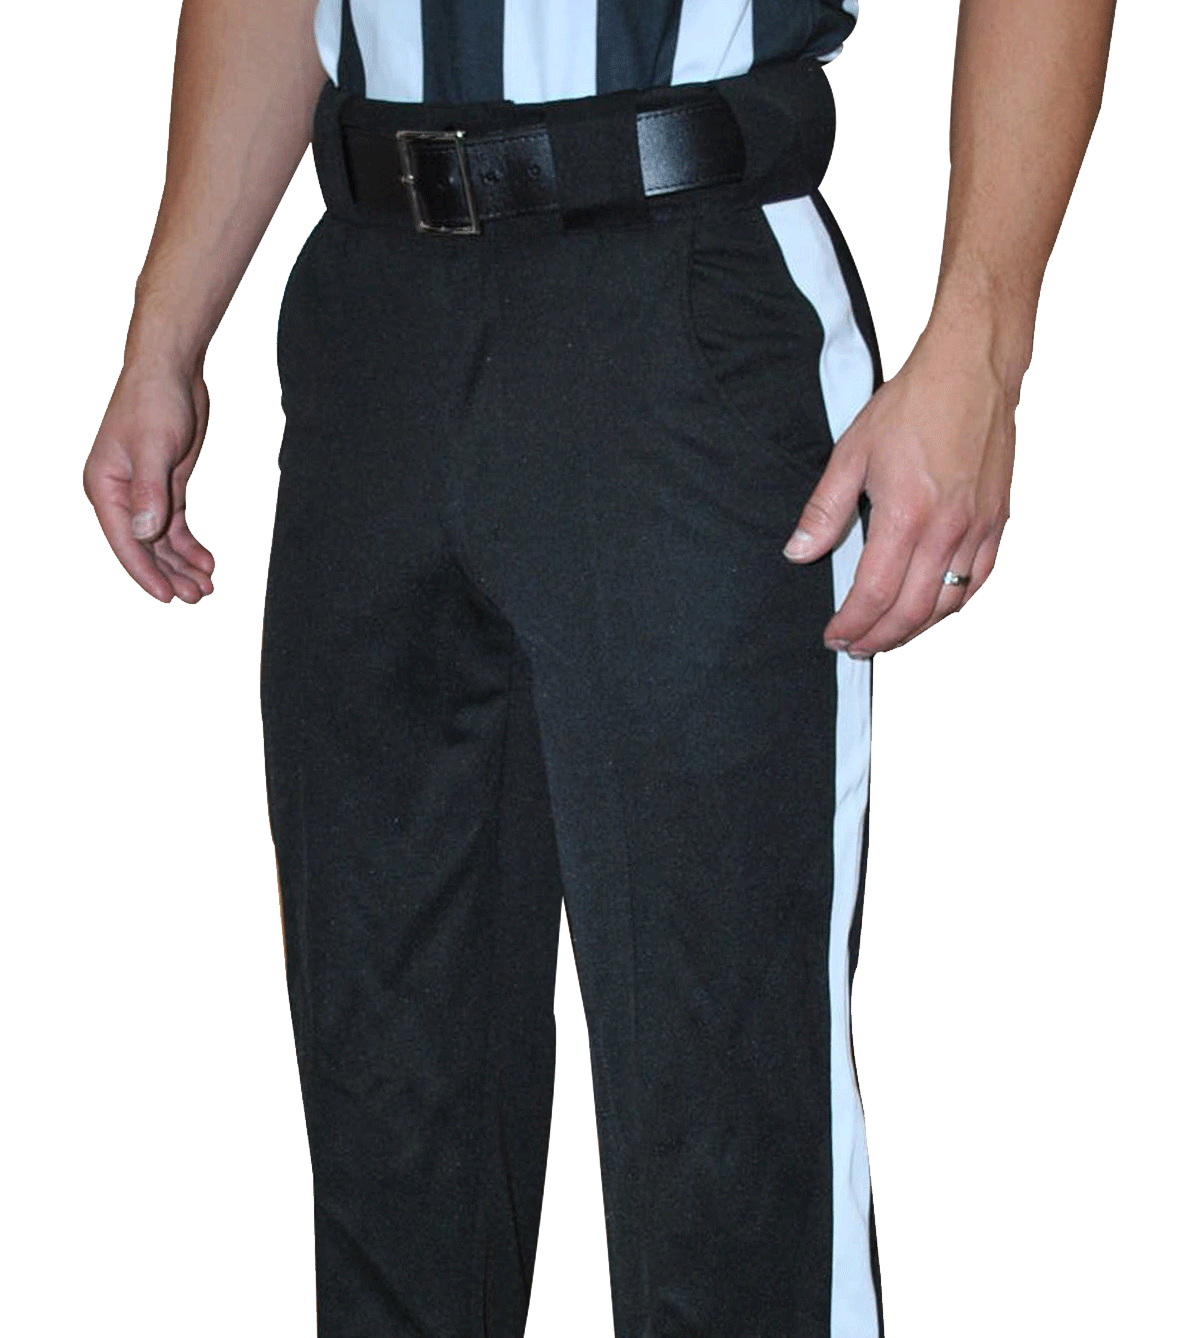 SMITTY Tapered Fit Warm Weather Pant